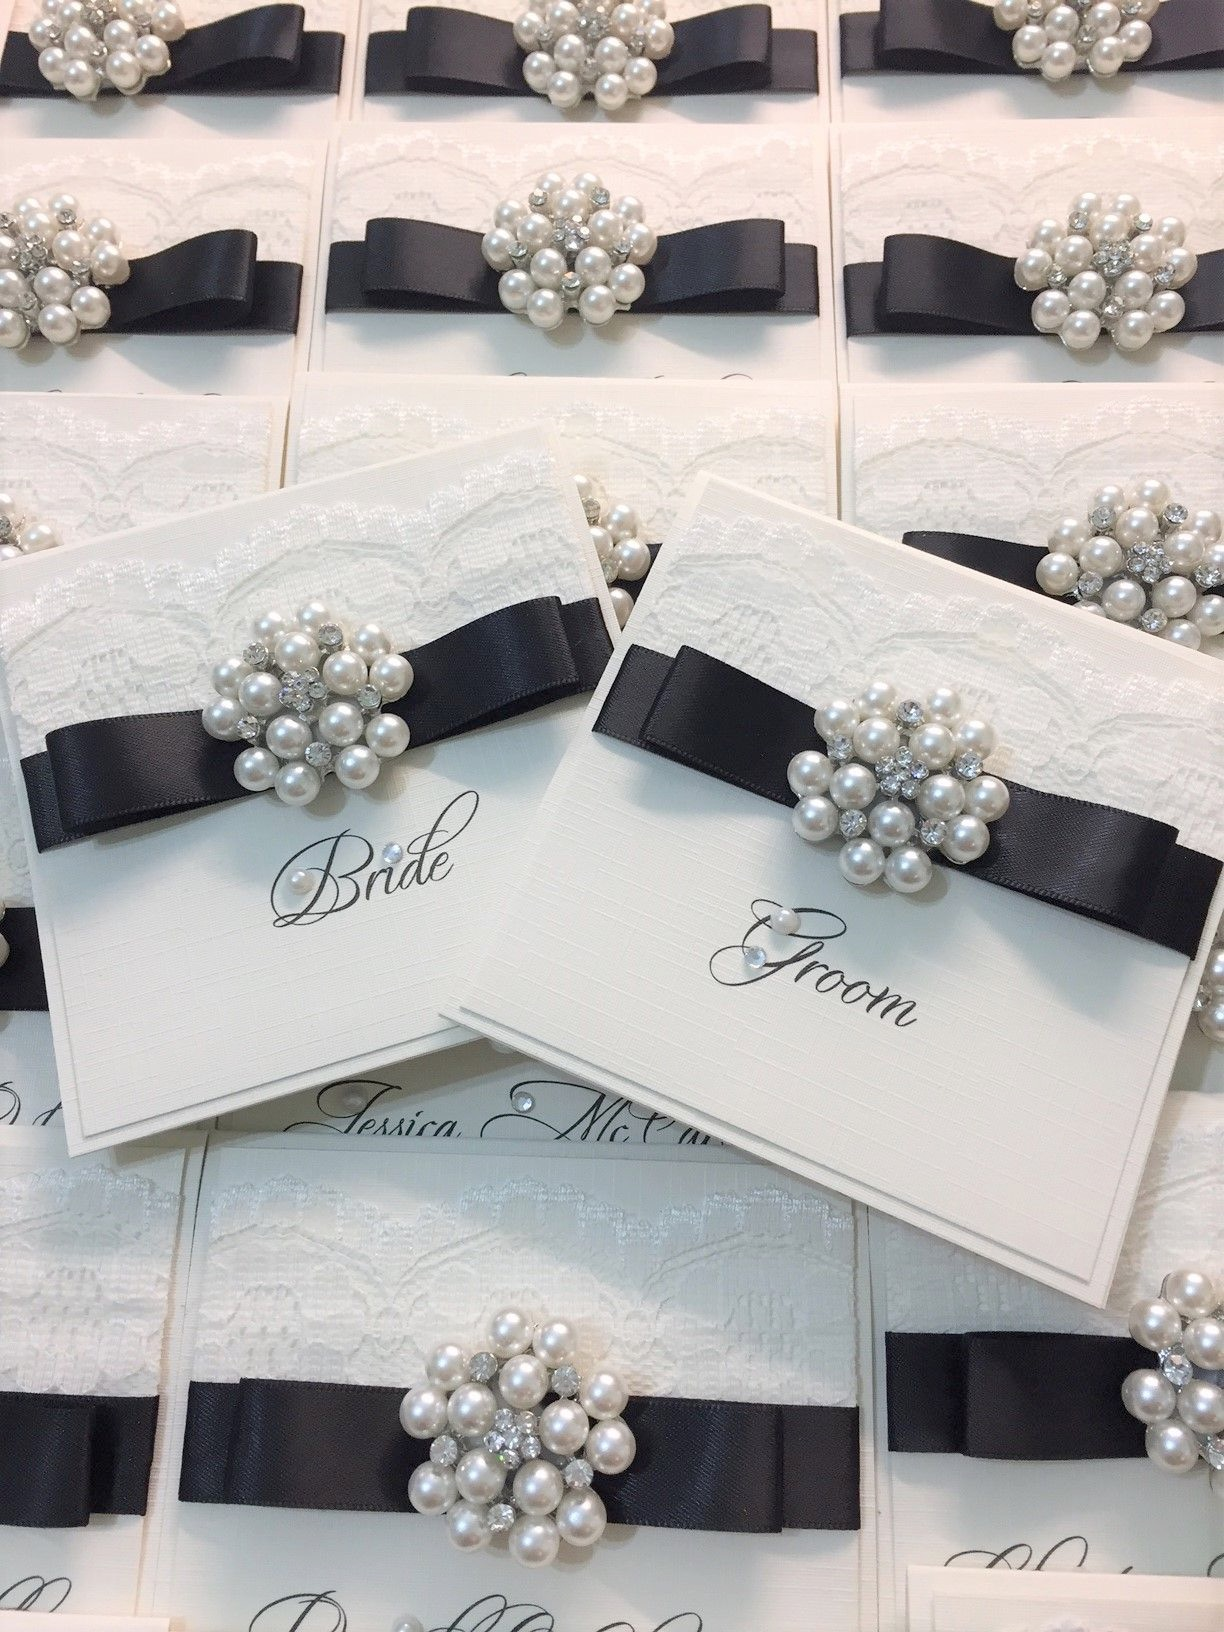 luxury place name settings for wedding guests with pearl brooch